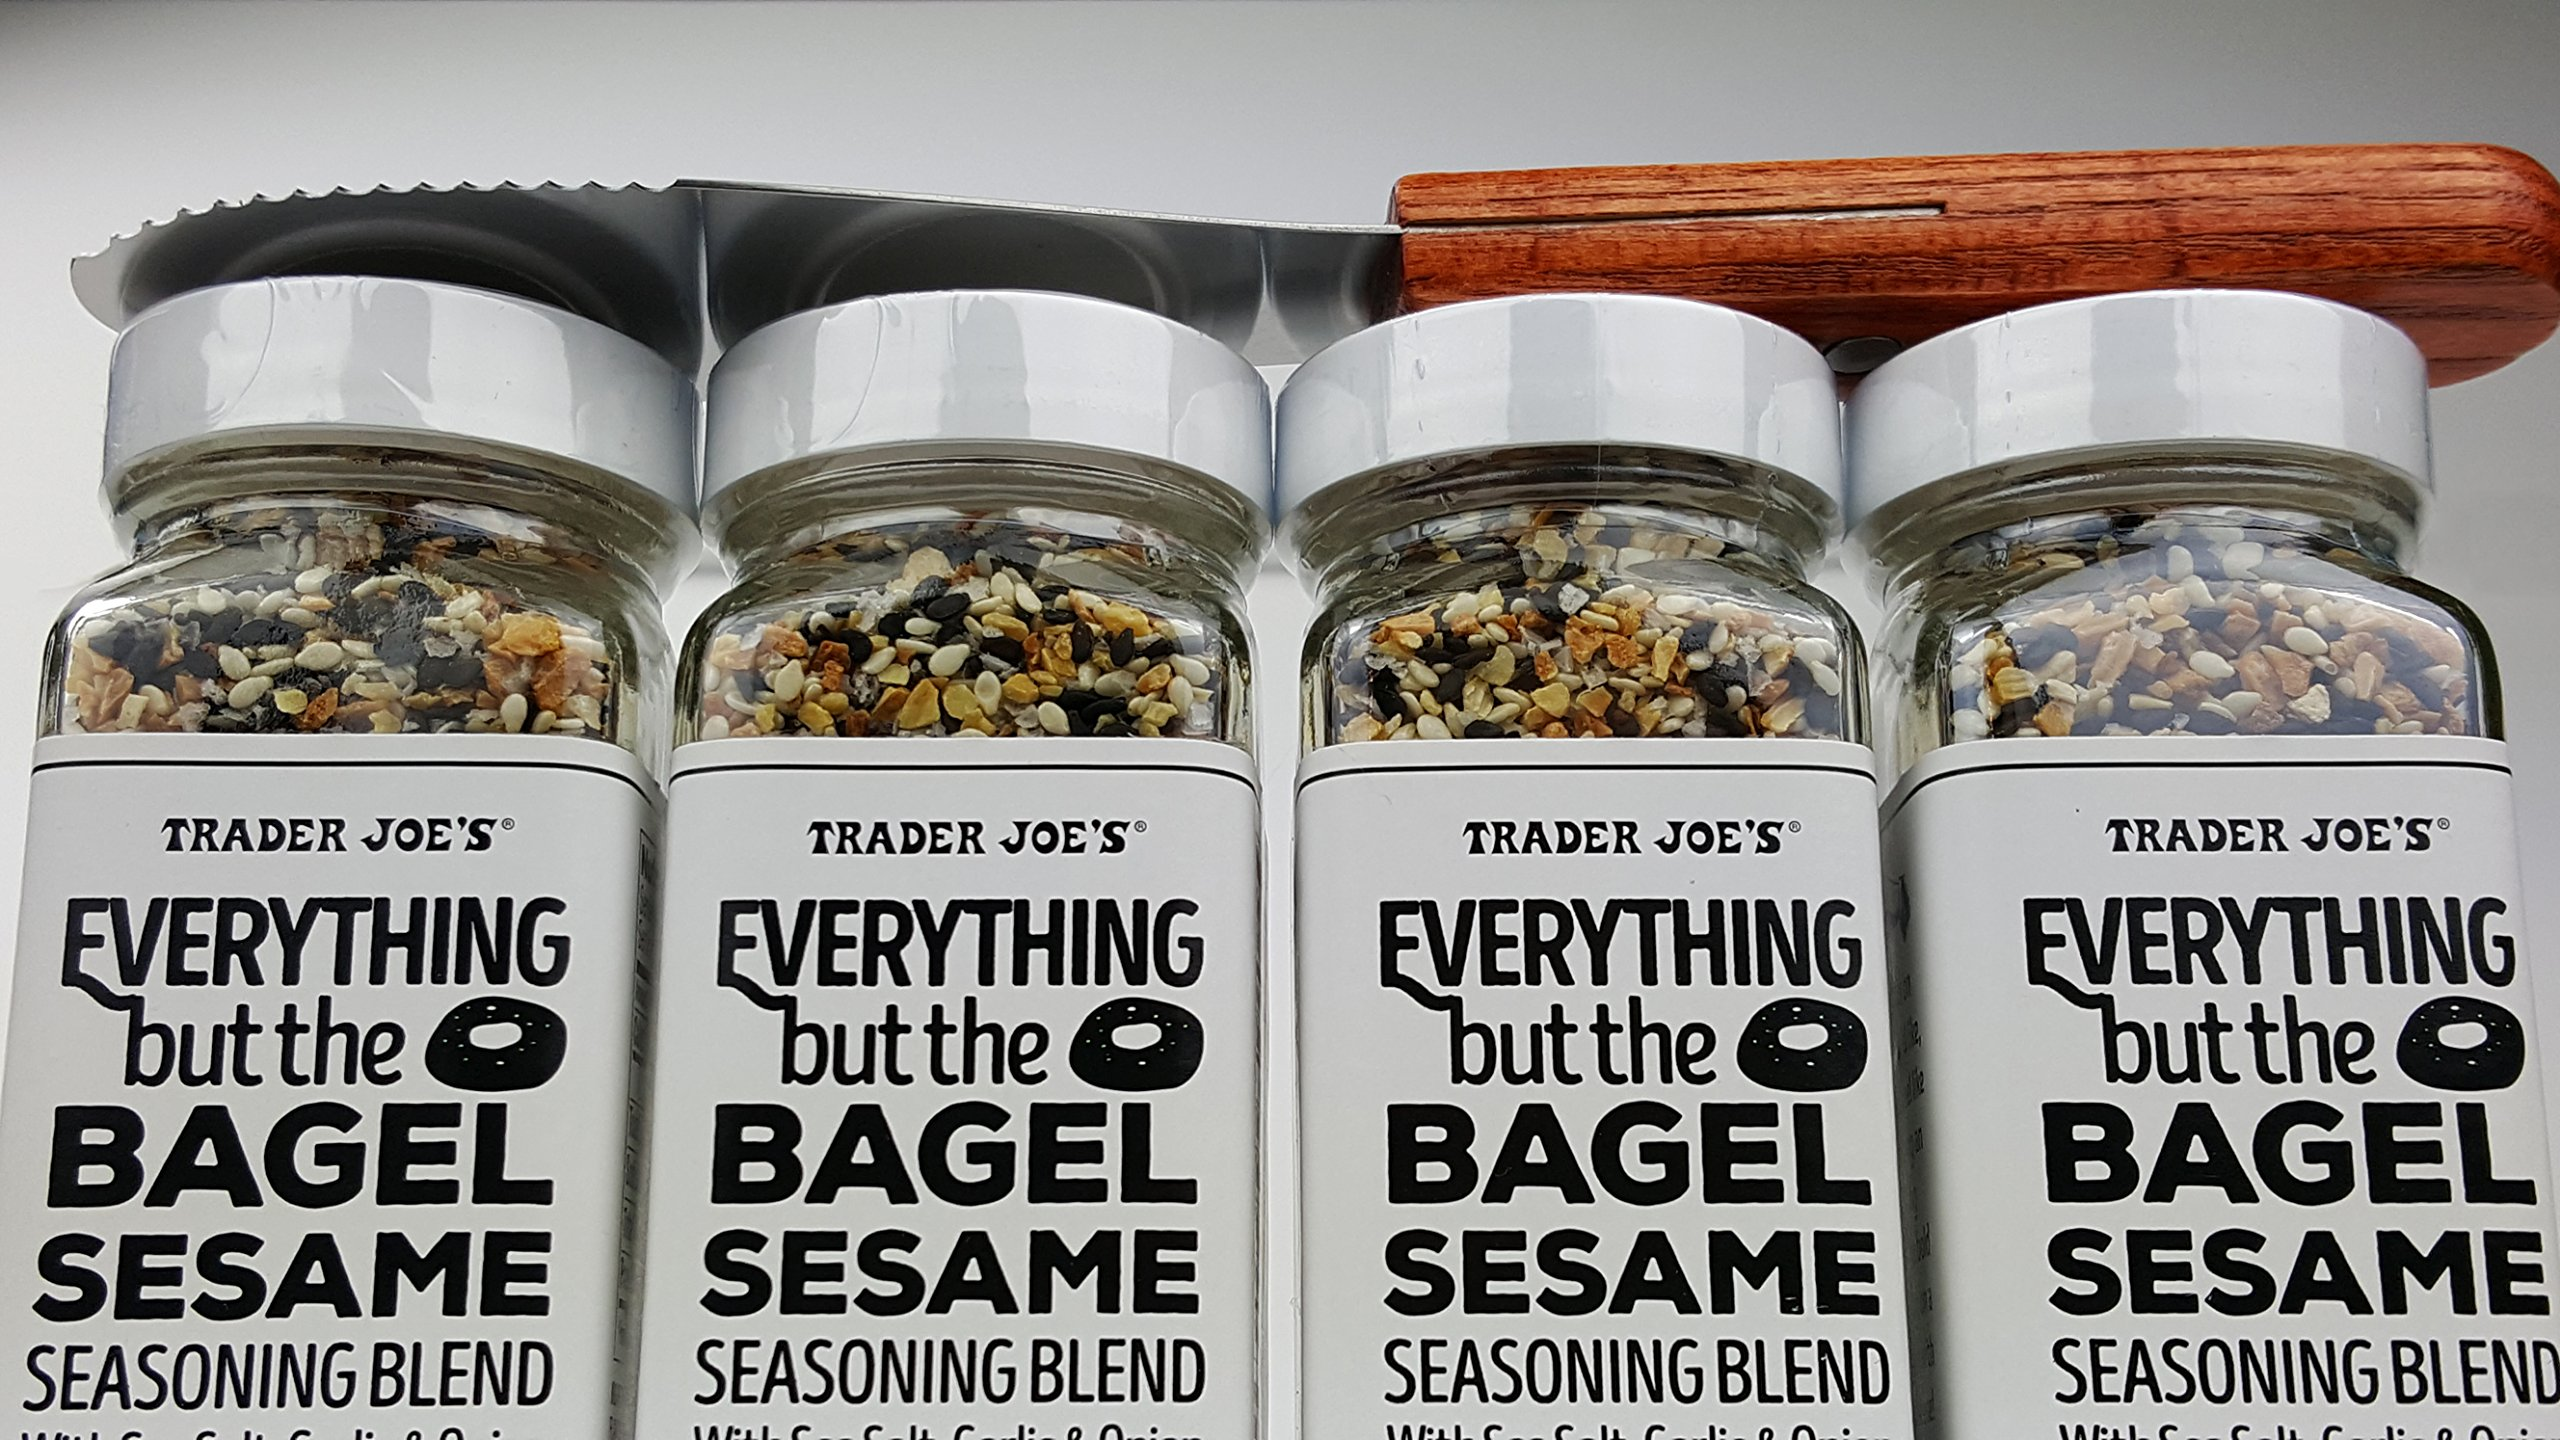 Trader Joes Everything but The Bagel Sesame Seasoning Blend With Sea Salt, Garlic and Onion Bundle - (Pack of 4) and Butter/Cream Cheese Spreading Knife by Unknown (Image #4)